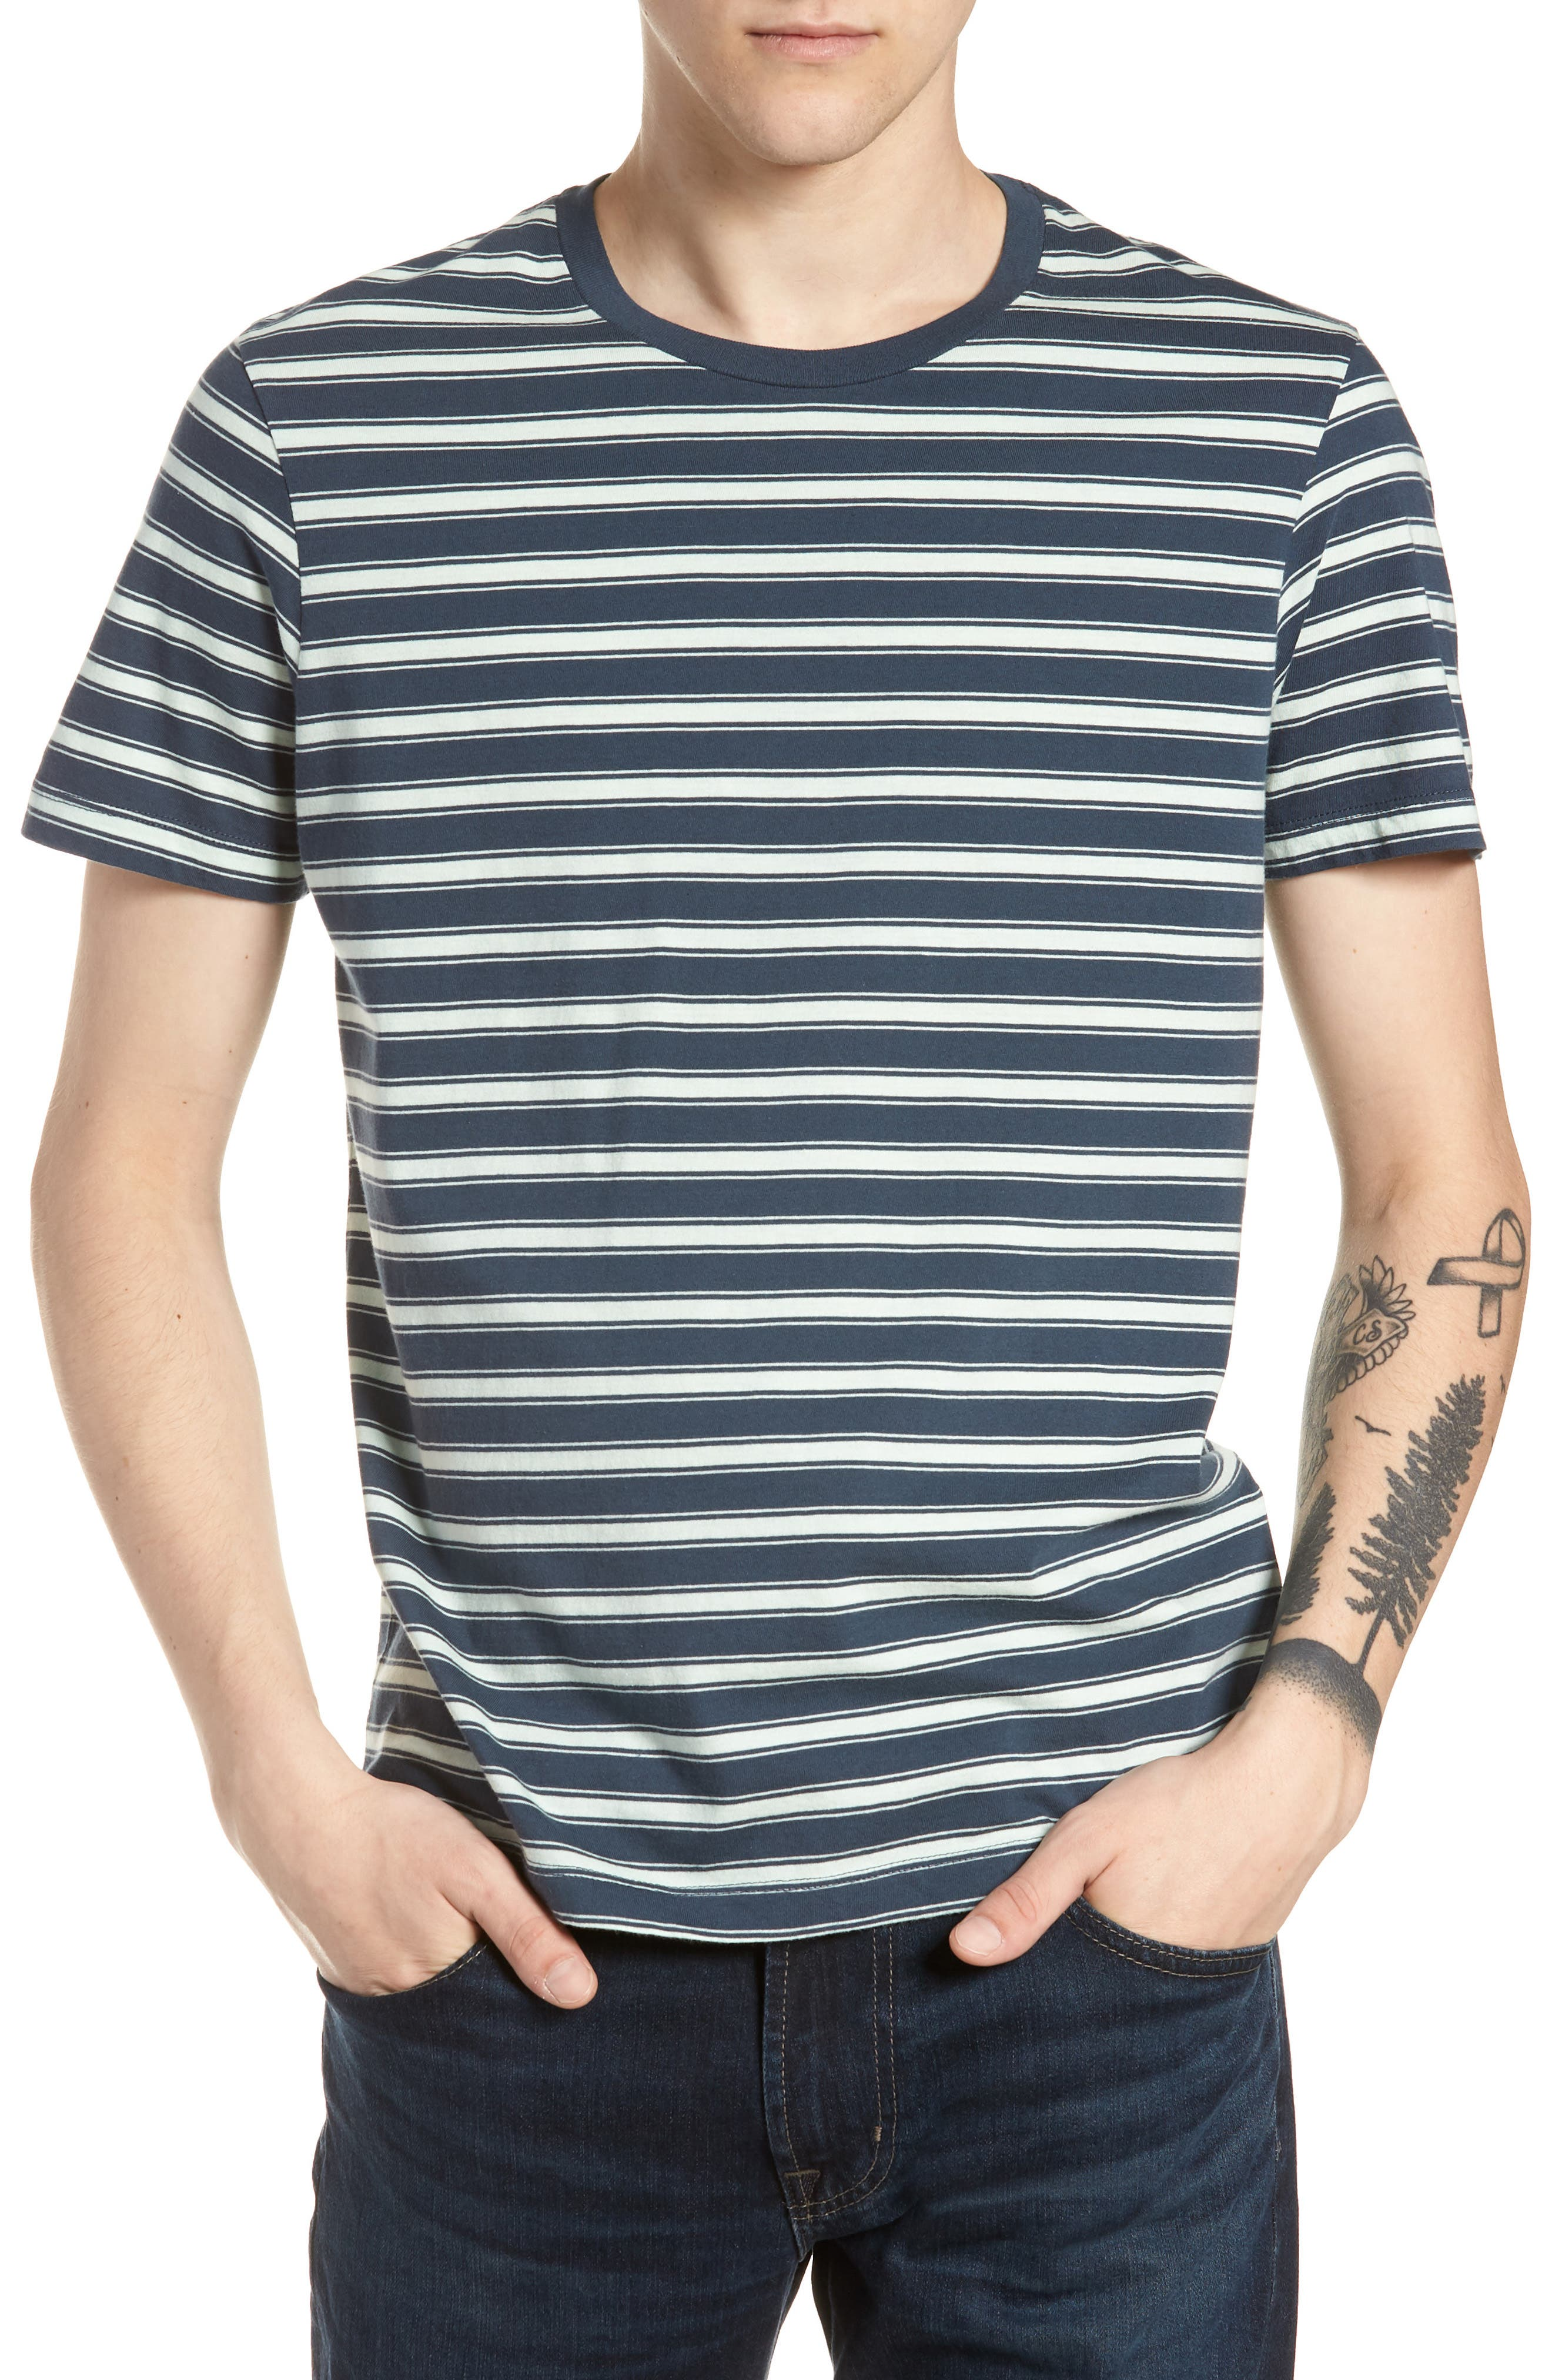 Mercantile Regular Fit Stripe T-Shirt,                             Main thumbnail 1, color,                             Muted Midnight